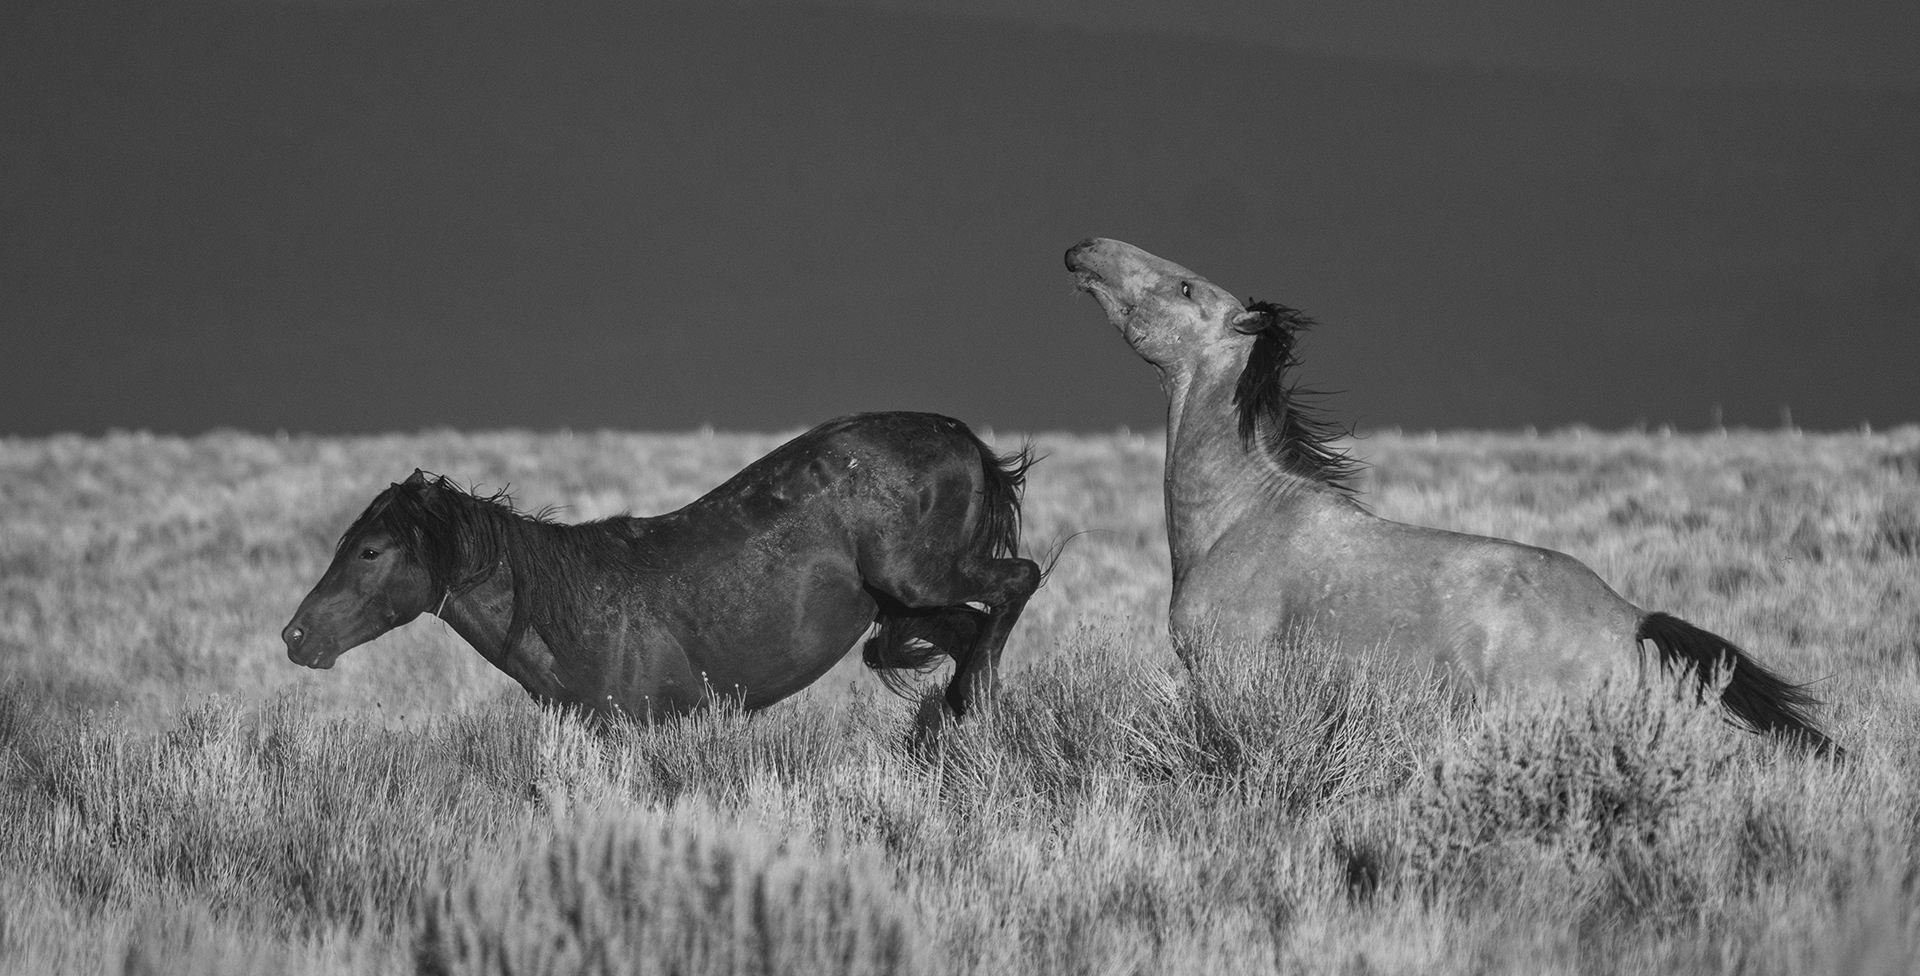 Horses-Kicking-Up-Their-Heels-In-The-Desert-MI-1-Place-by-Douglas-Smith-CC